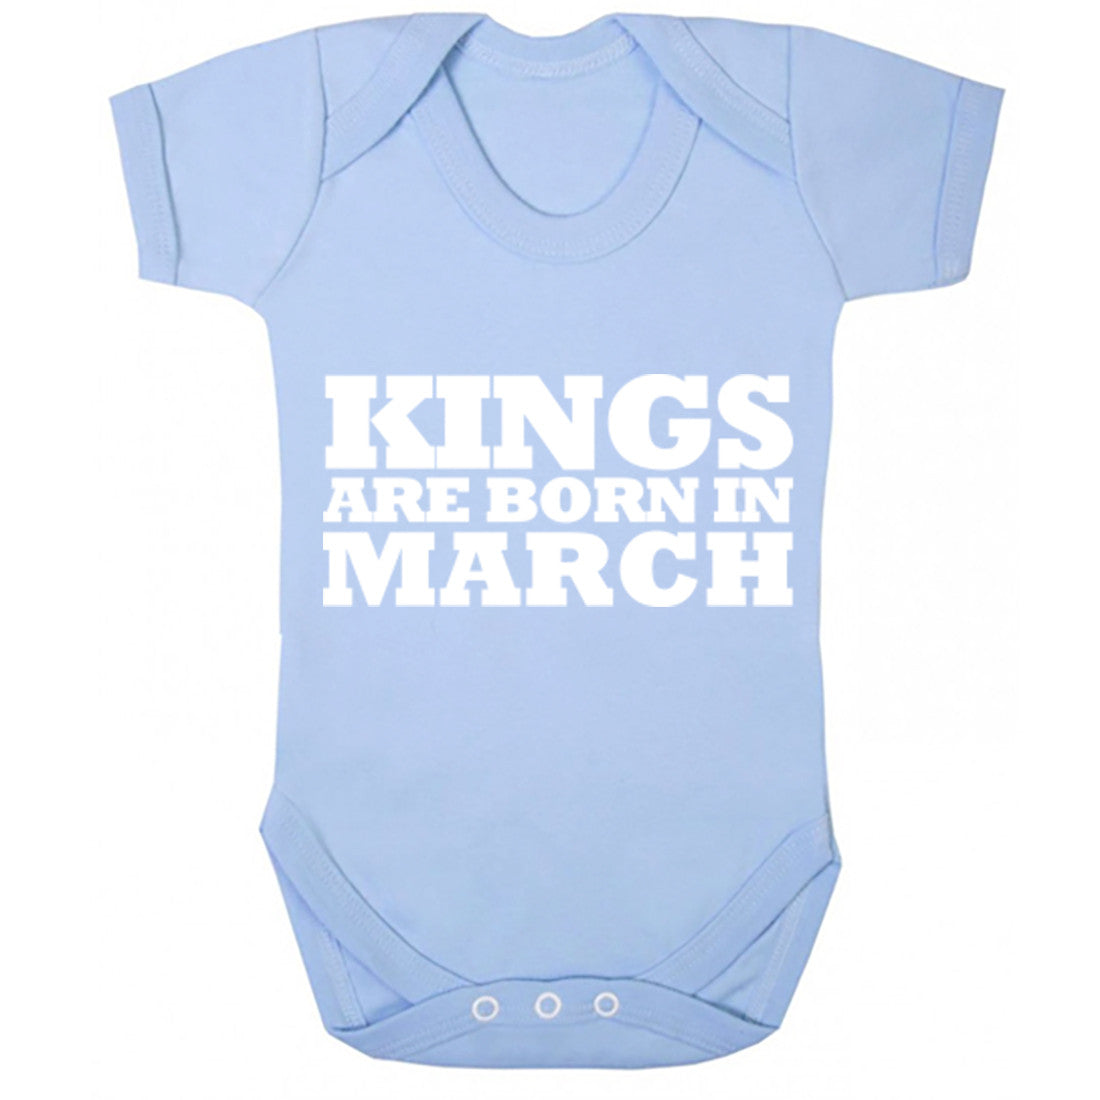 Kings Are Born In March Baby Vest K1686 - Illustrated Identity Ltd.